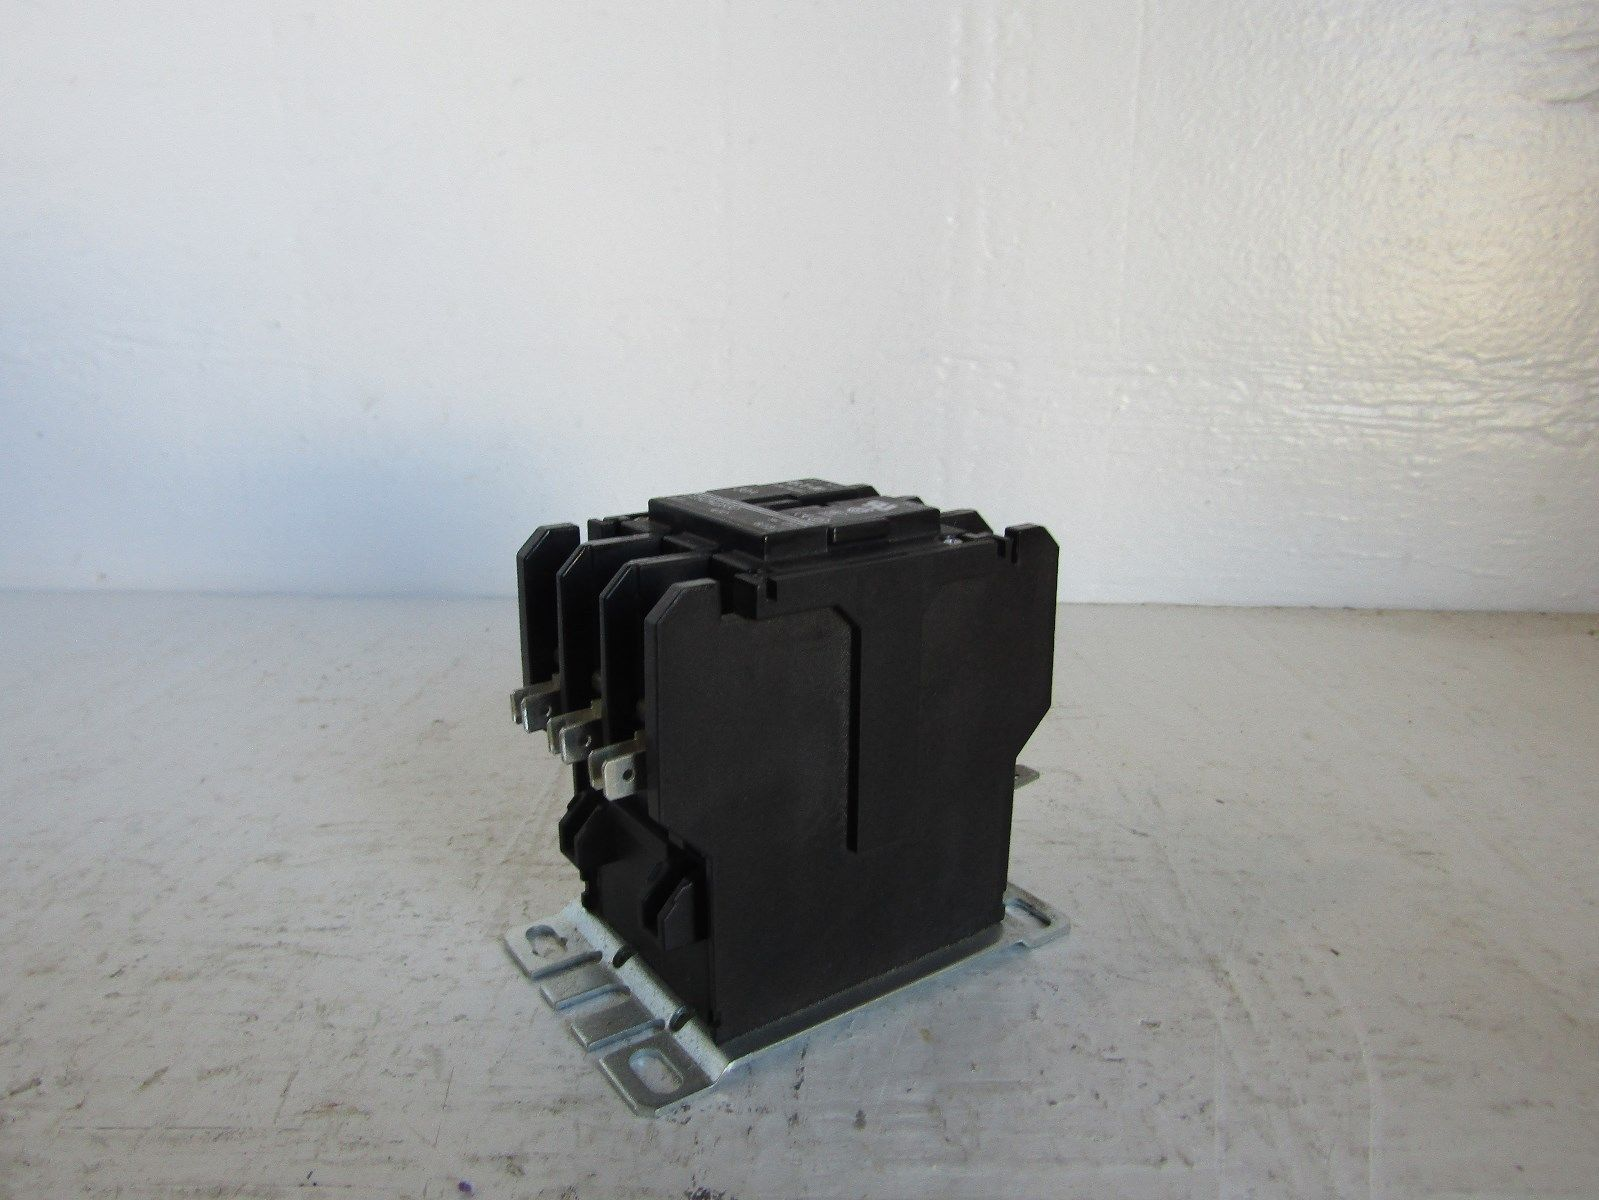 CUTLER HAMMER C25DND330 30 AMP 3 POLE CONTACTOR 120 VOLT COIL 331989252131 2?fit\=1000%2C750\&ssl\=1 c25dnd330 wiring diagram 3 phase contactor wiring diagram start Eaton C25dnf340 Contactor at n-0.co